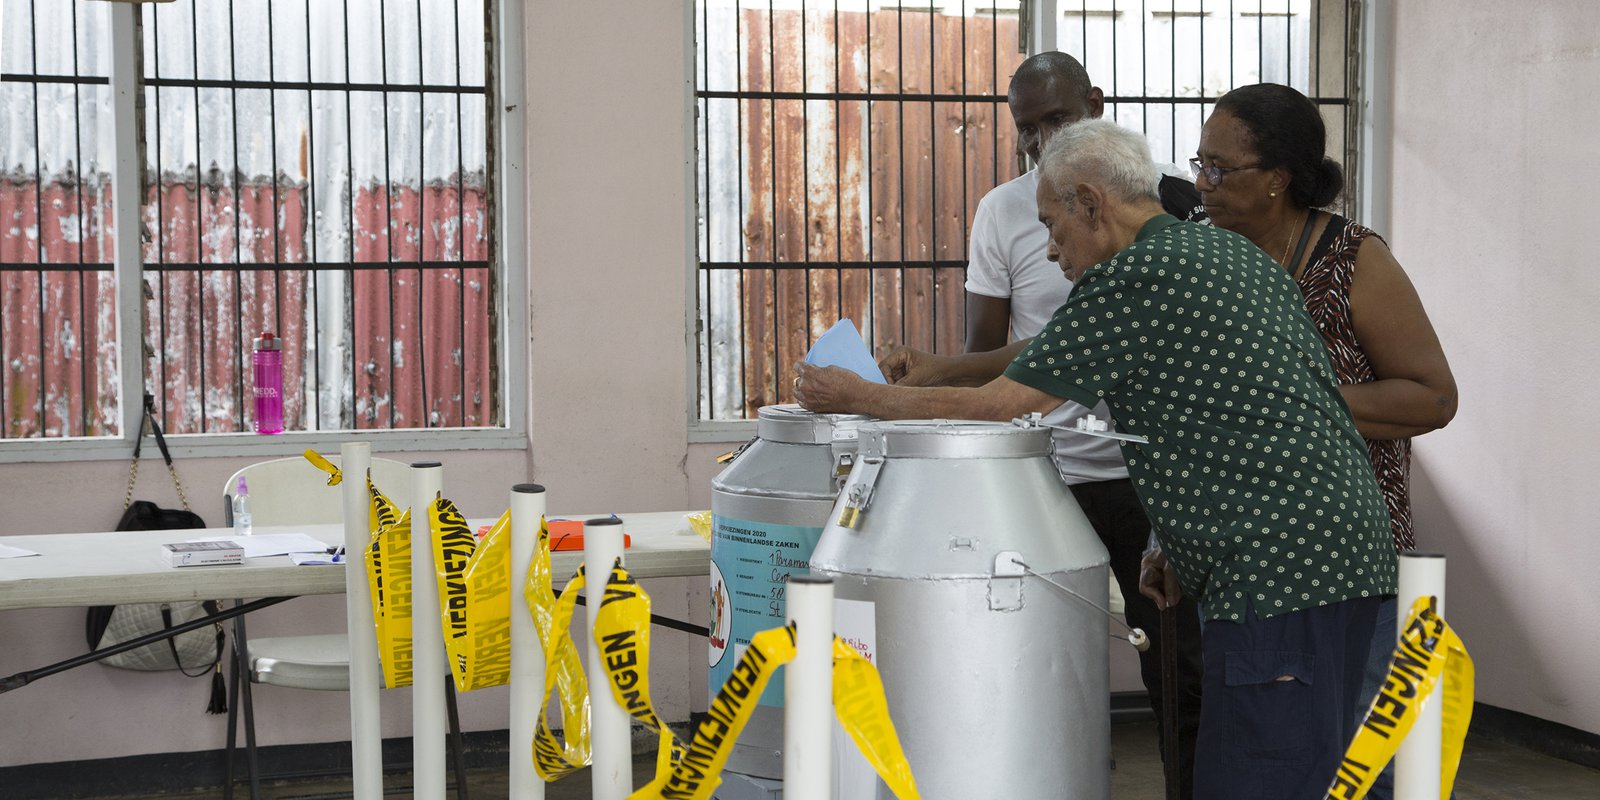 A man cast his vote at a polling station in Paramaribo on May 25, 2020 during parliamentary elections. Photo by DANNY LIU/AFP via Getty Images.